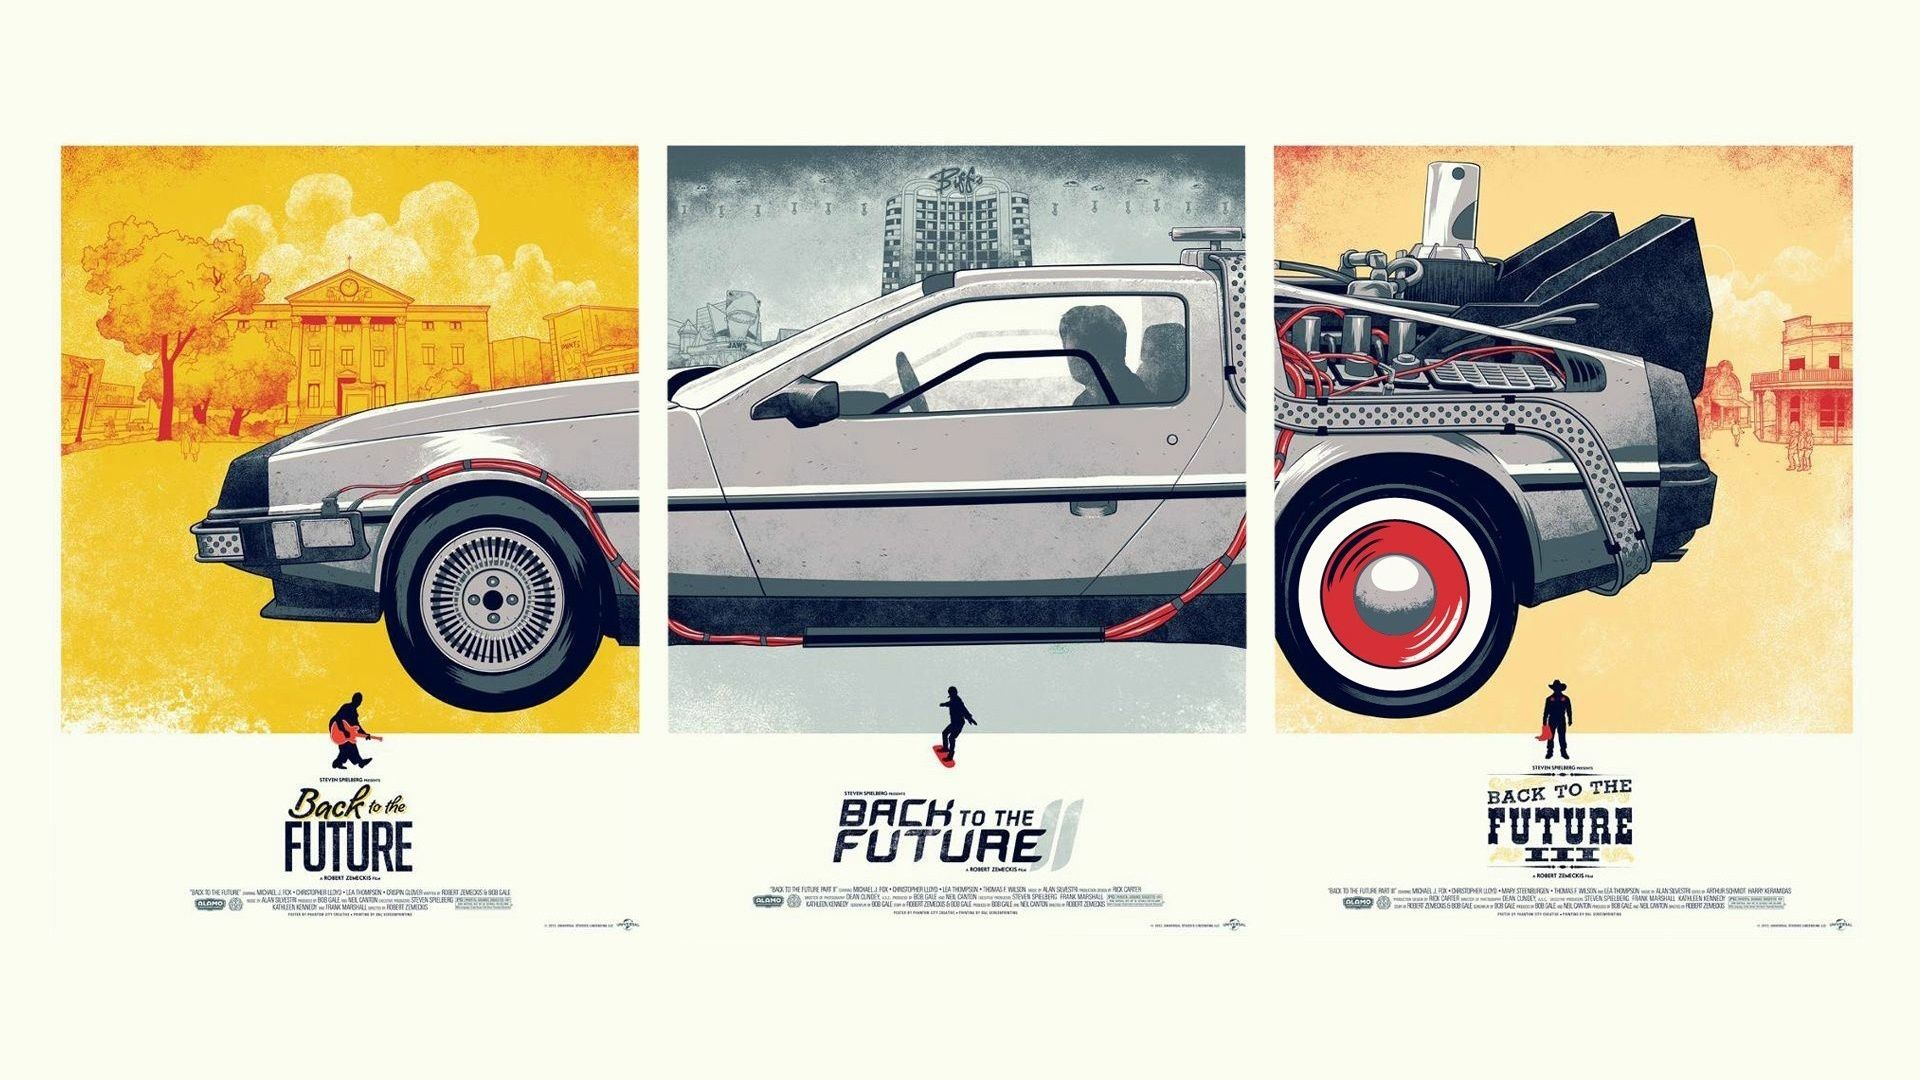 Pin By Alli Hahn On Movies Future Wallpaper The Future Movie Future Poster